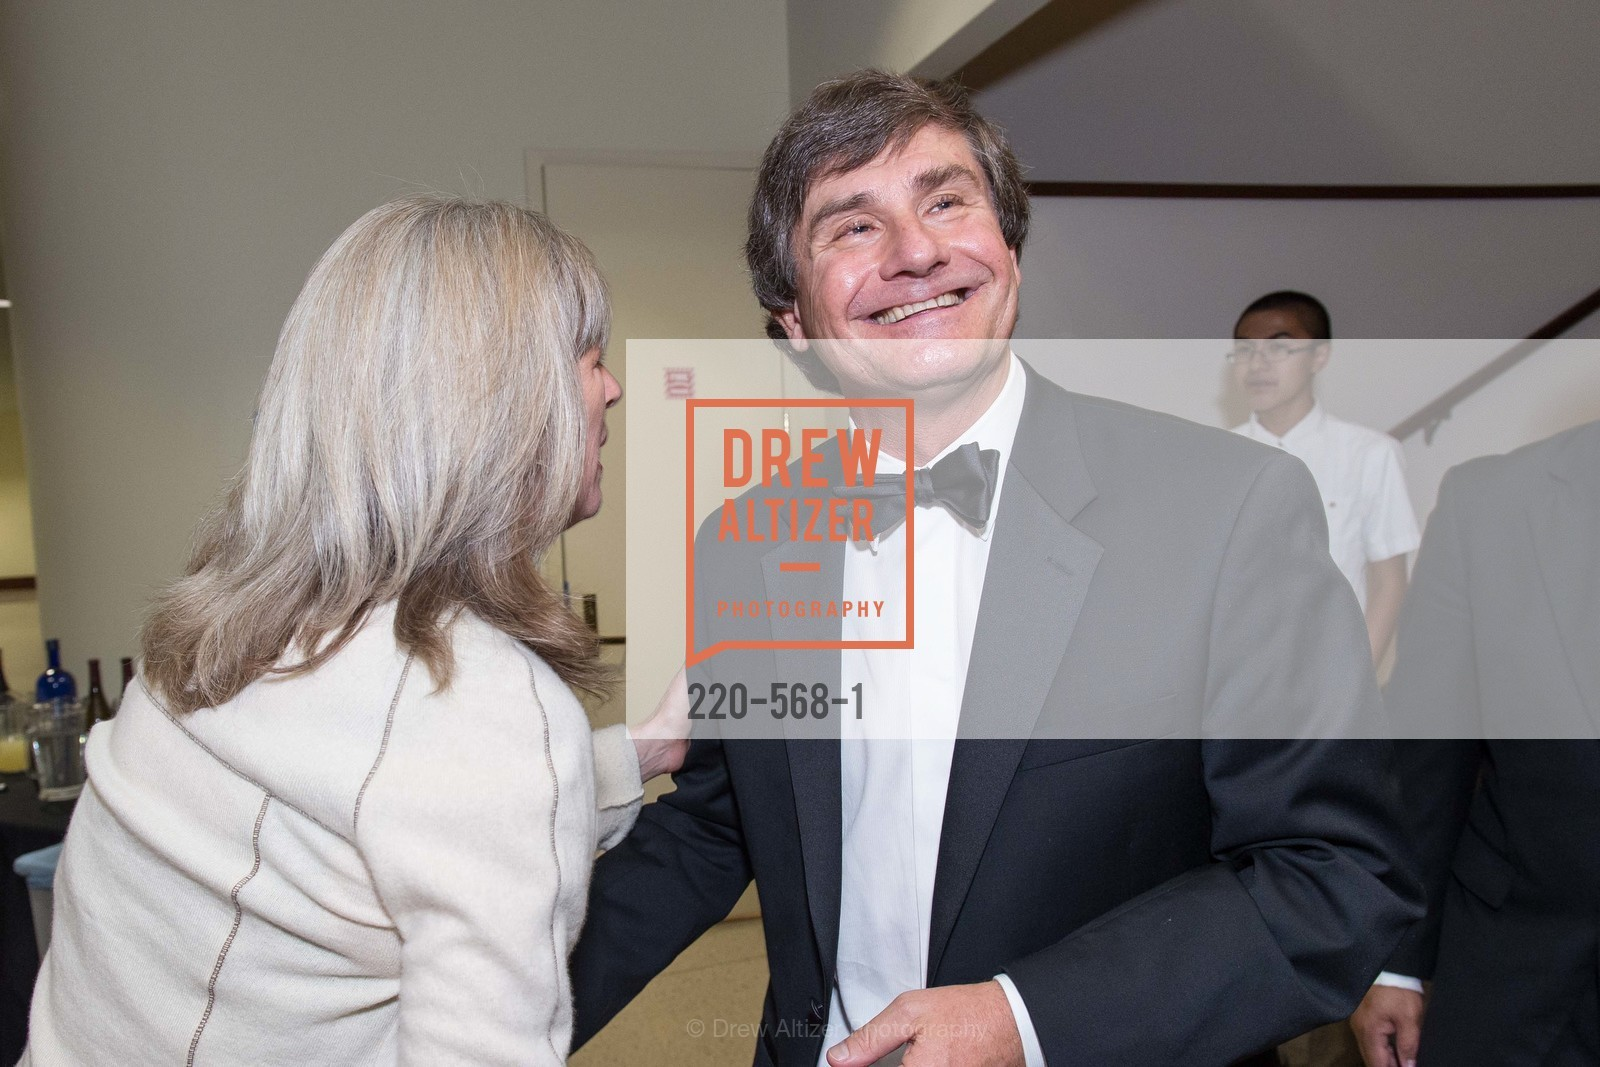 Noelle Filippenko, Alex Filippenko, SOTHEBY'S  Hosts a Private Viewing of Highlights from the Collection of MRS. PAUL MELLON, US, September 17th, 2014,Drew Altizer, Drew Altizer Photography, full-service agency, private events, San Francisco photographer, photographer california